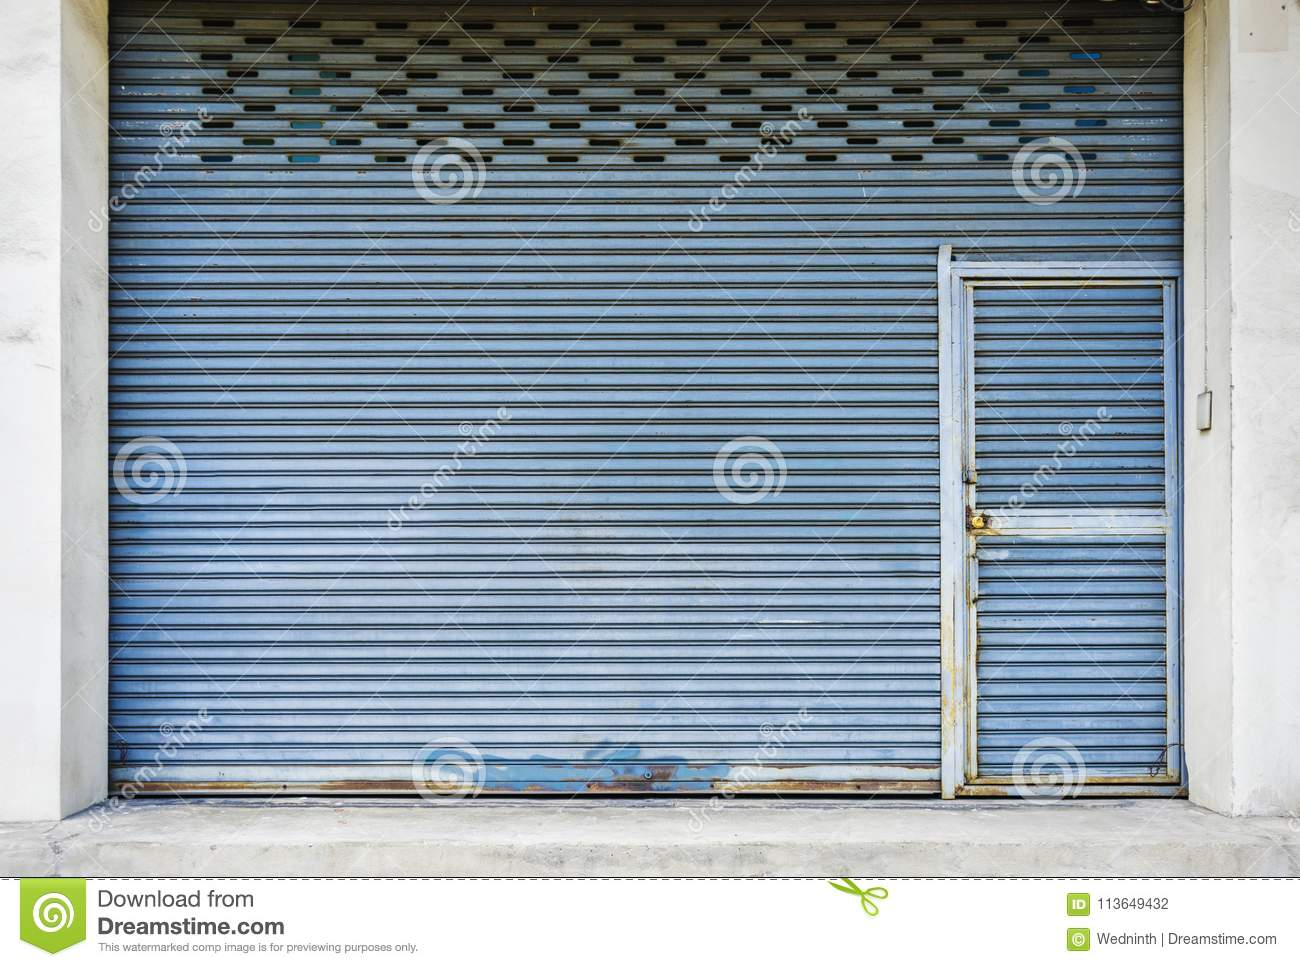 Industrial garage door texture Wall Warehouse Corrugated Metal Sheetslide Door roller Shutter Texture Dreamstimecom Corrugated Metal Sheetslide Door roller Shutter Texture Stock